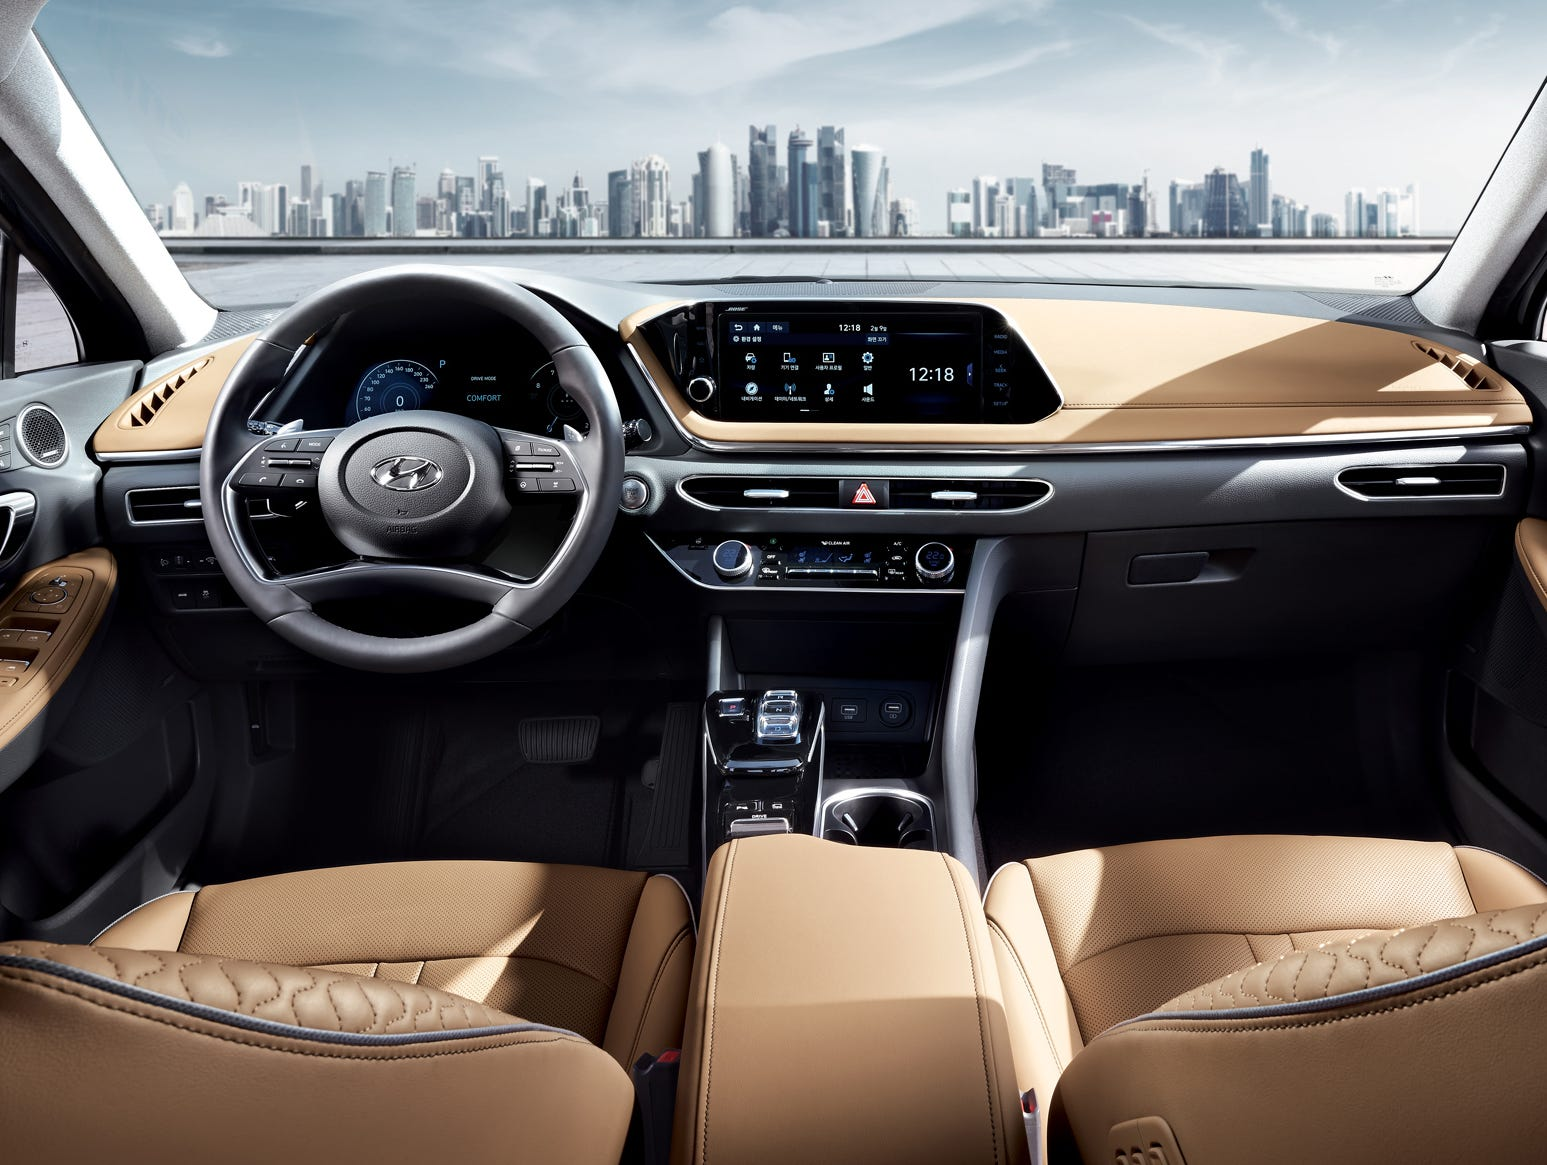 Inside, the Sonata has upscale features and and an elegant-looking dashboard sweep.